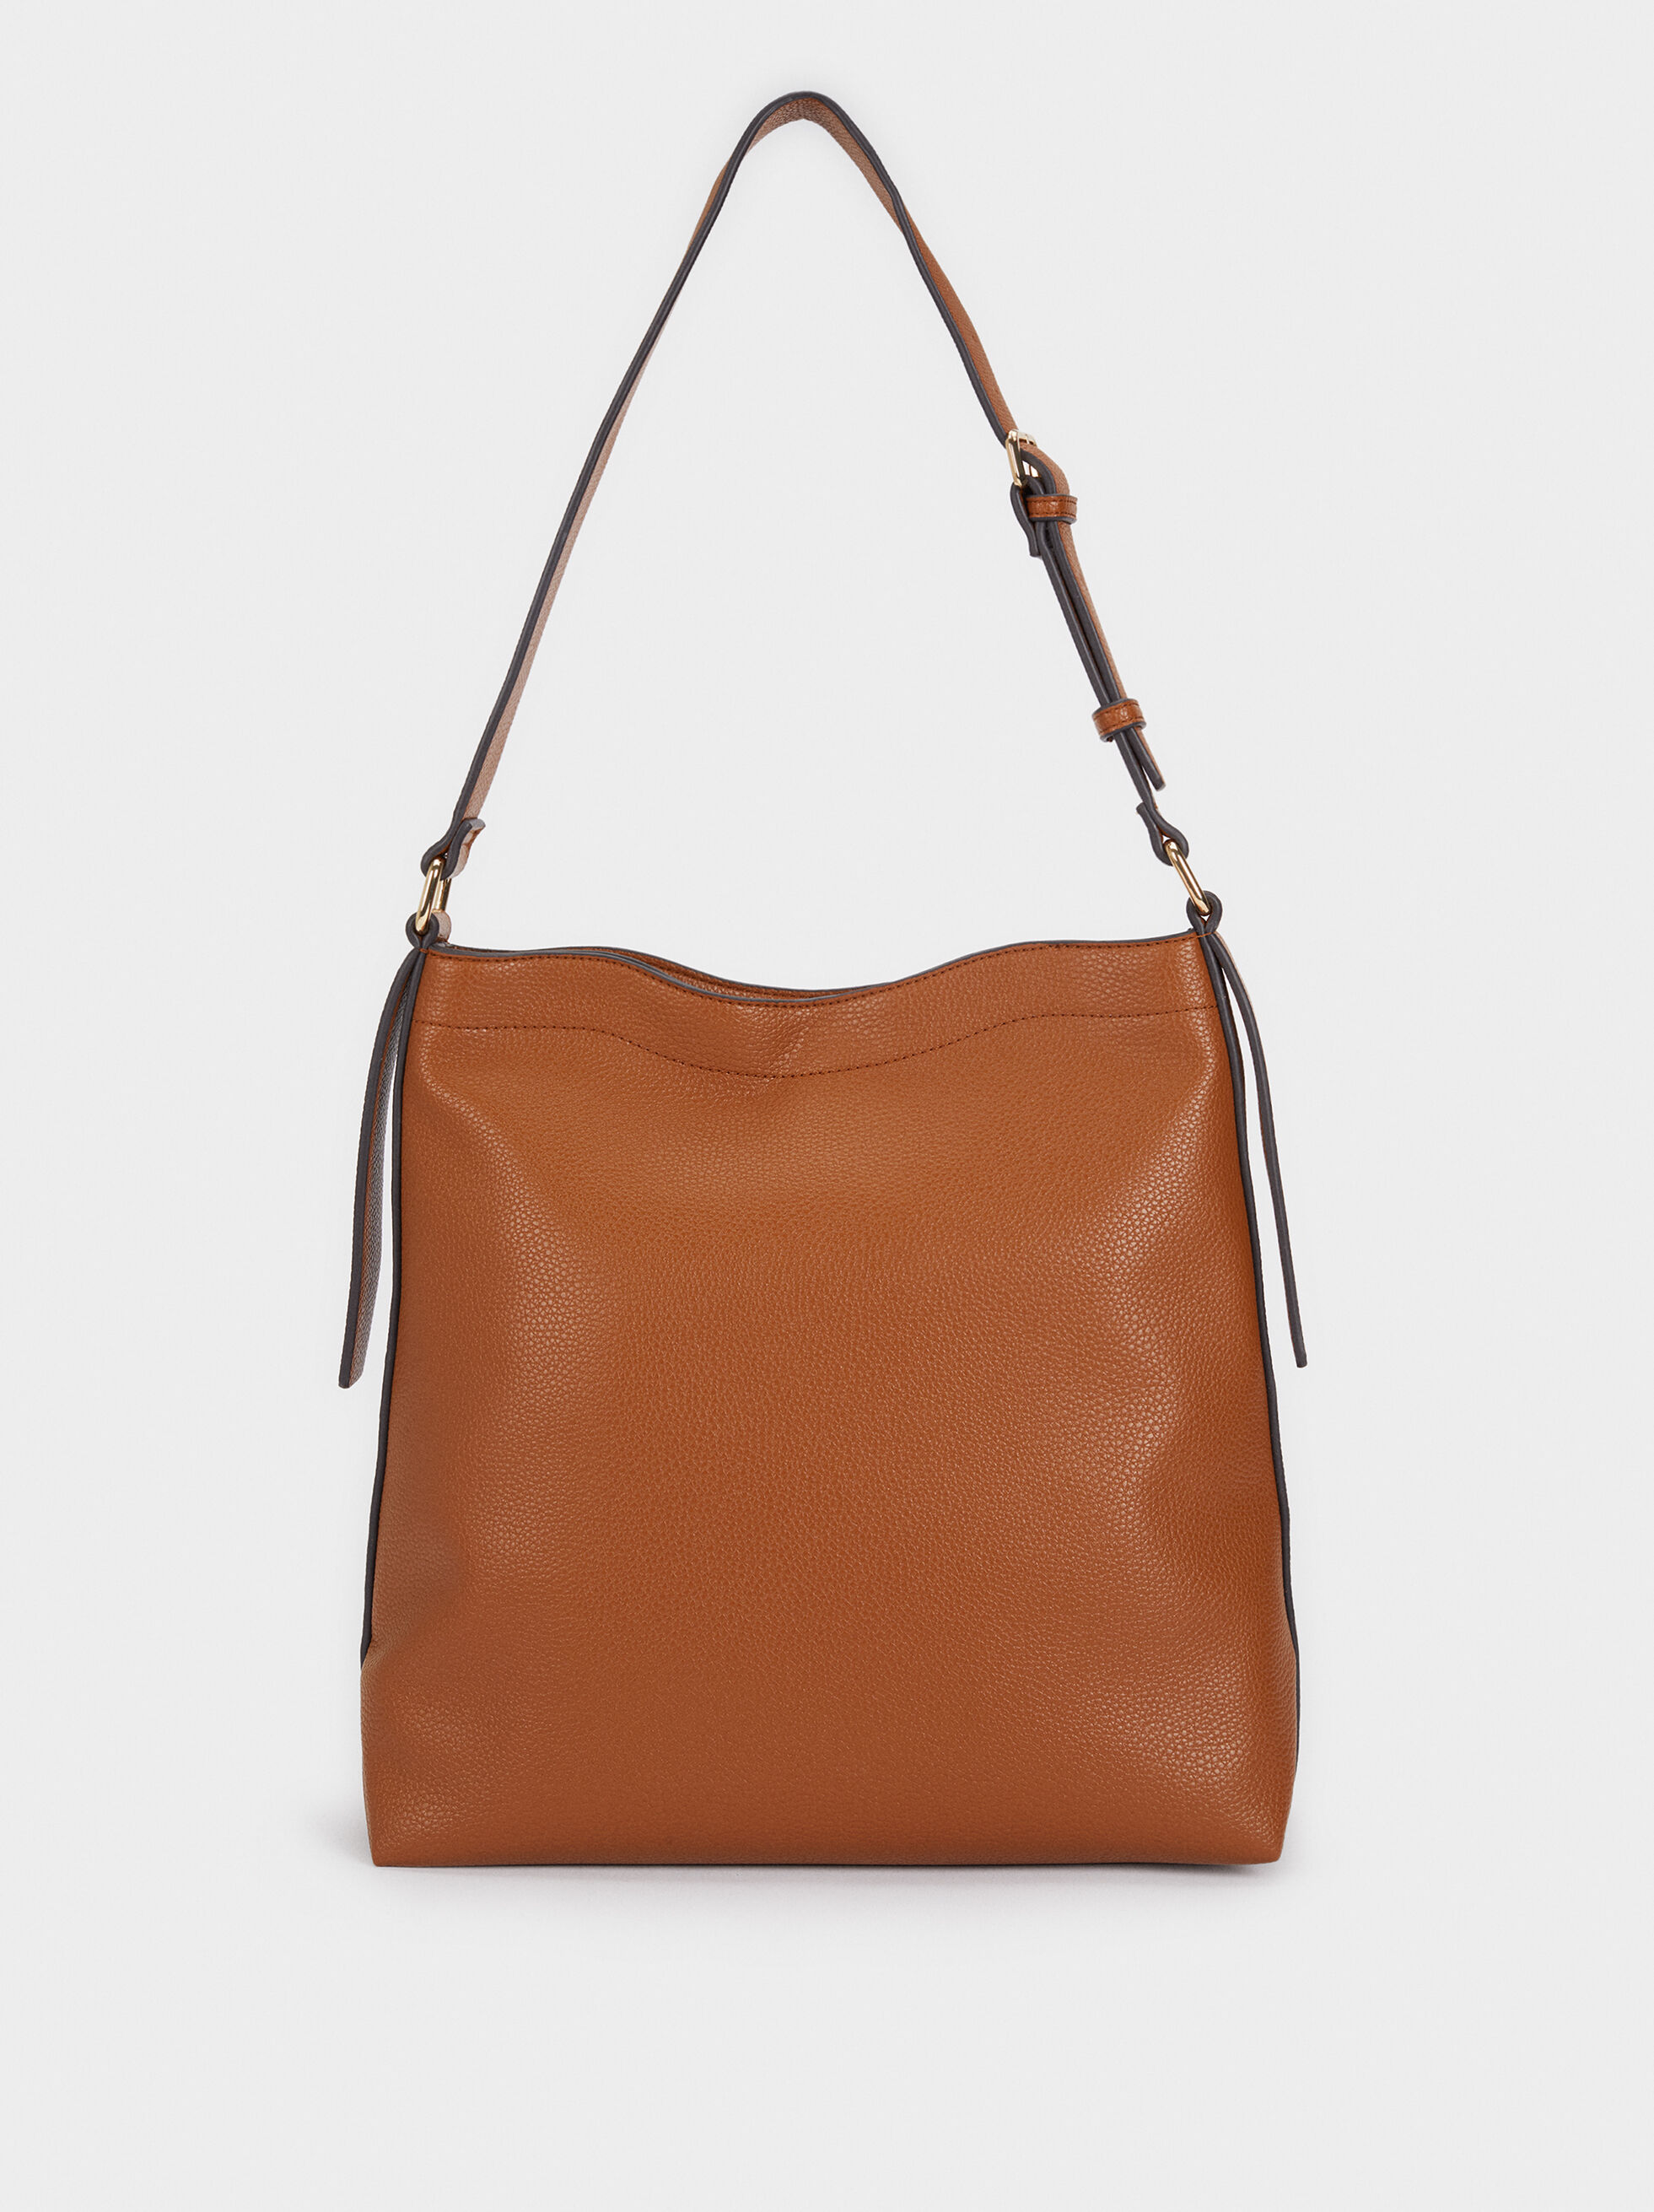 Suede Shoulder Bag, Camel, hi-res